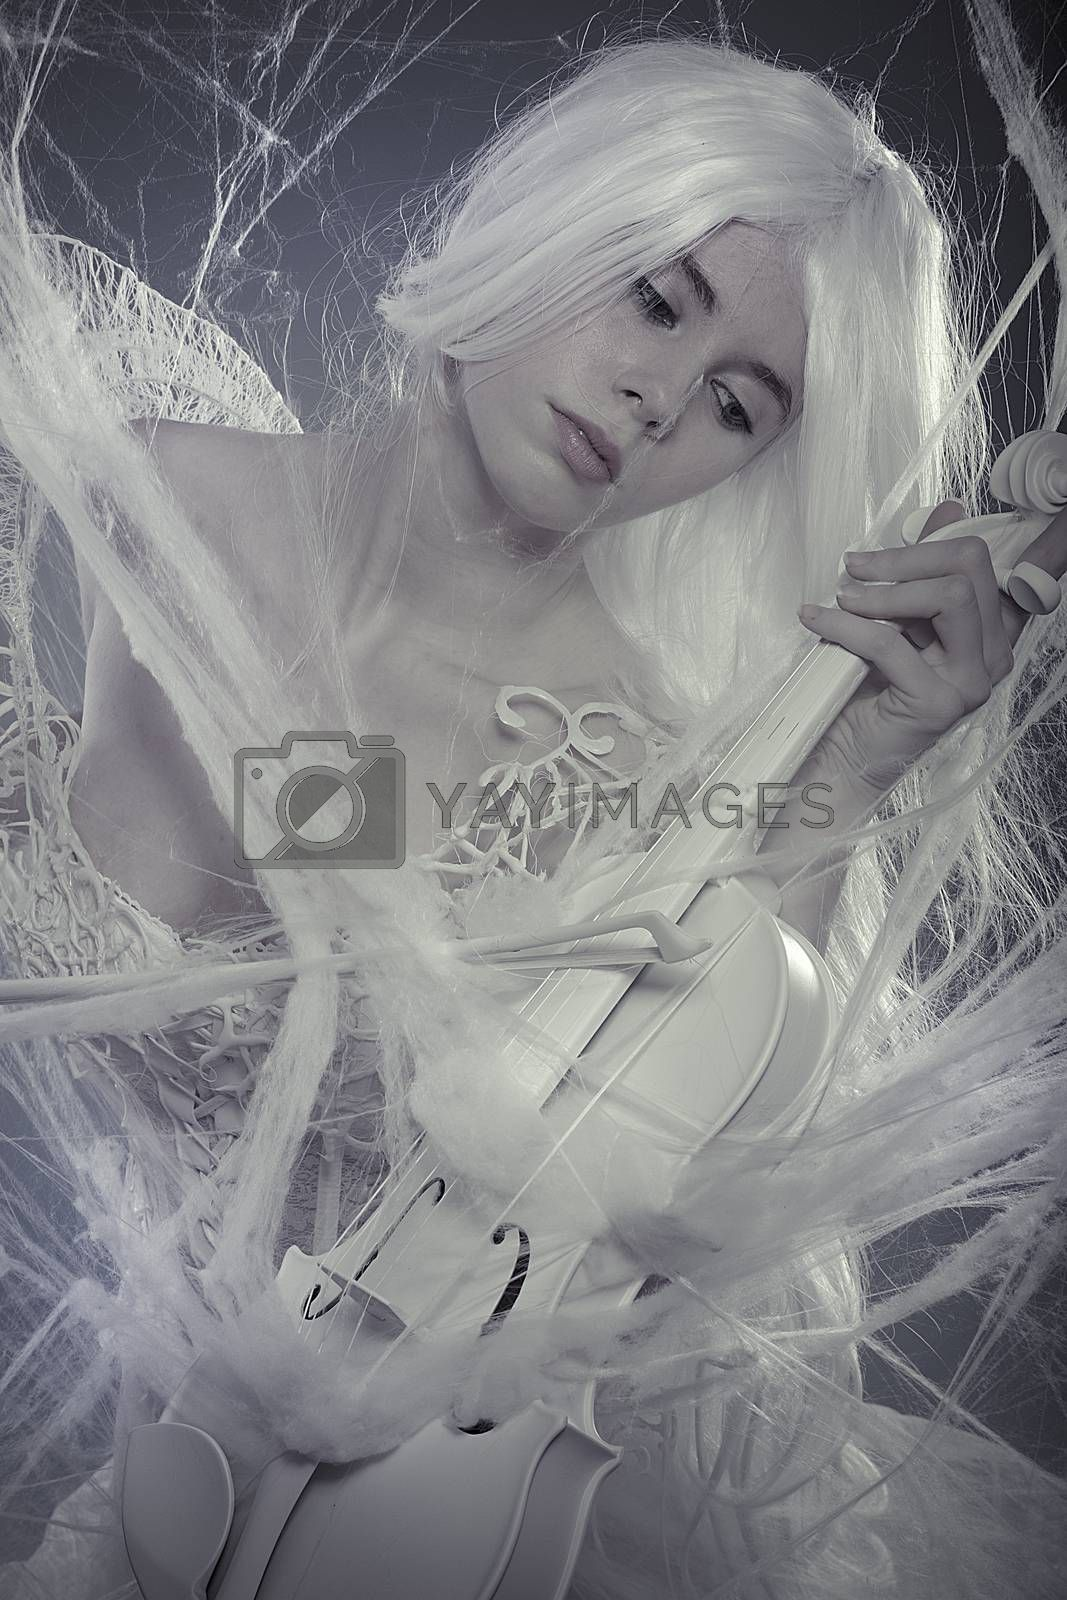 Sexy beautiful woman trapped in a spider web with a white violin, lace dress